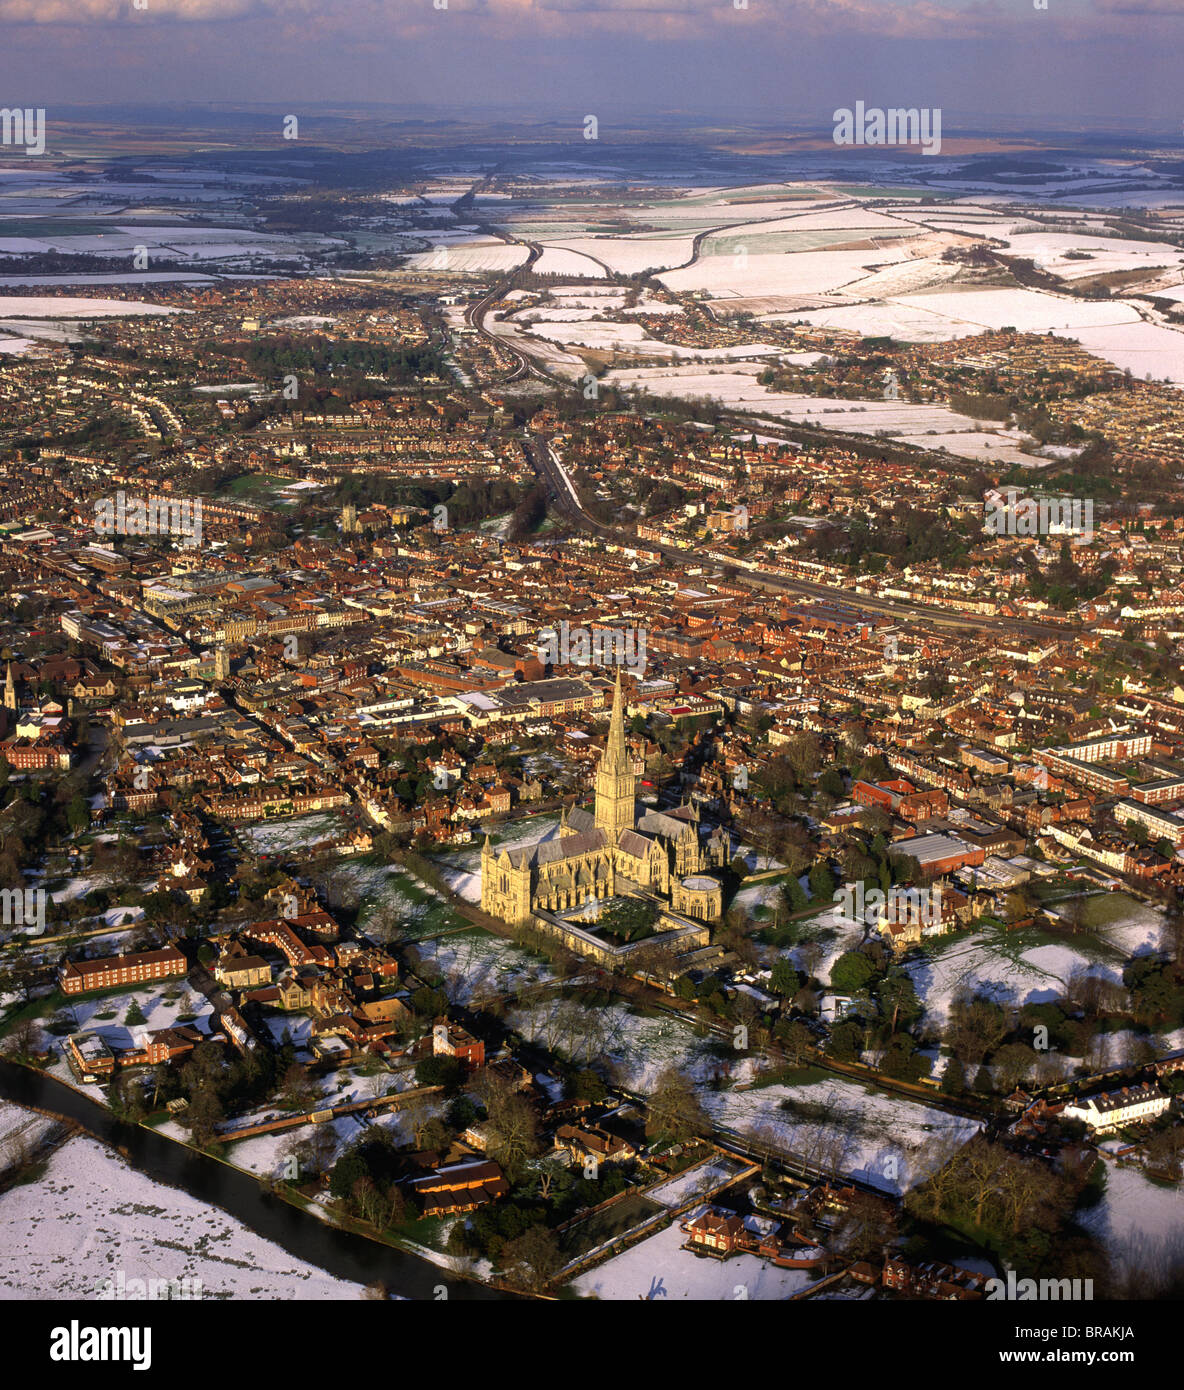 Aerial image of Salisbury Cathedral and city in snow, Salisbury, Wiltshire, England, United Kingdom, Europe Stock Photo